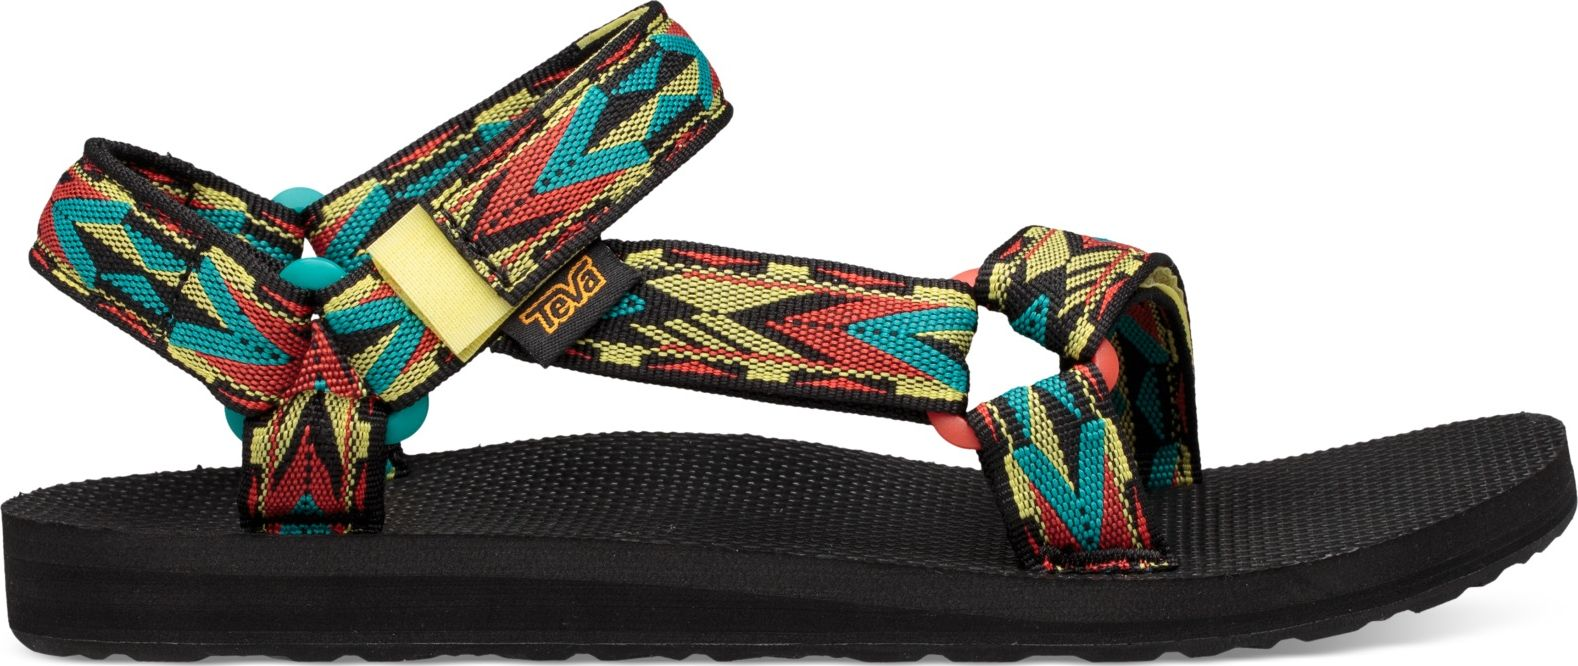 Teva Original Universal Women's Double Diamond Aurora 38